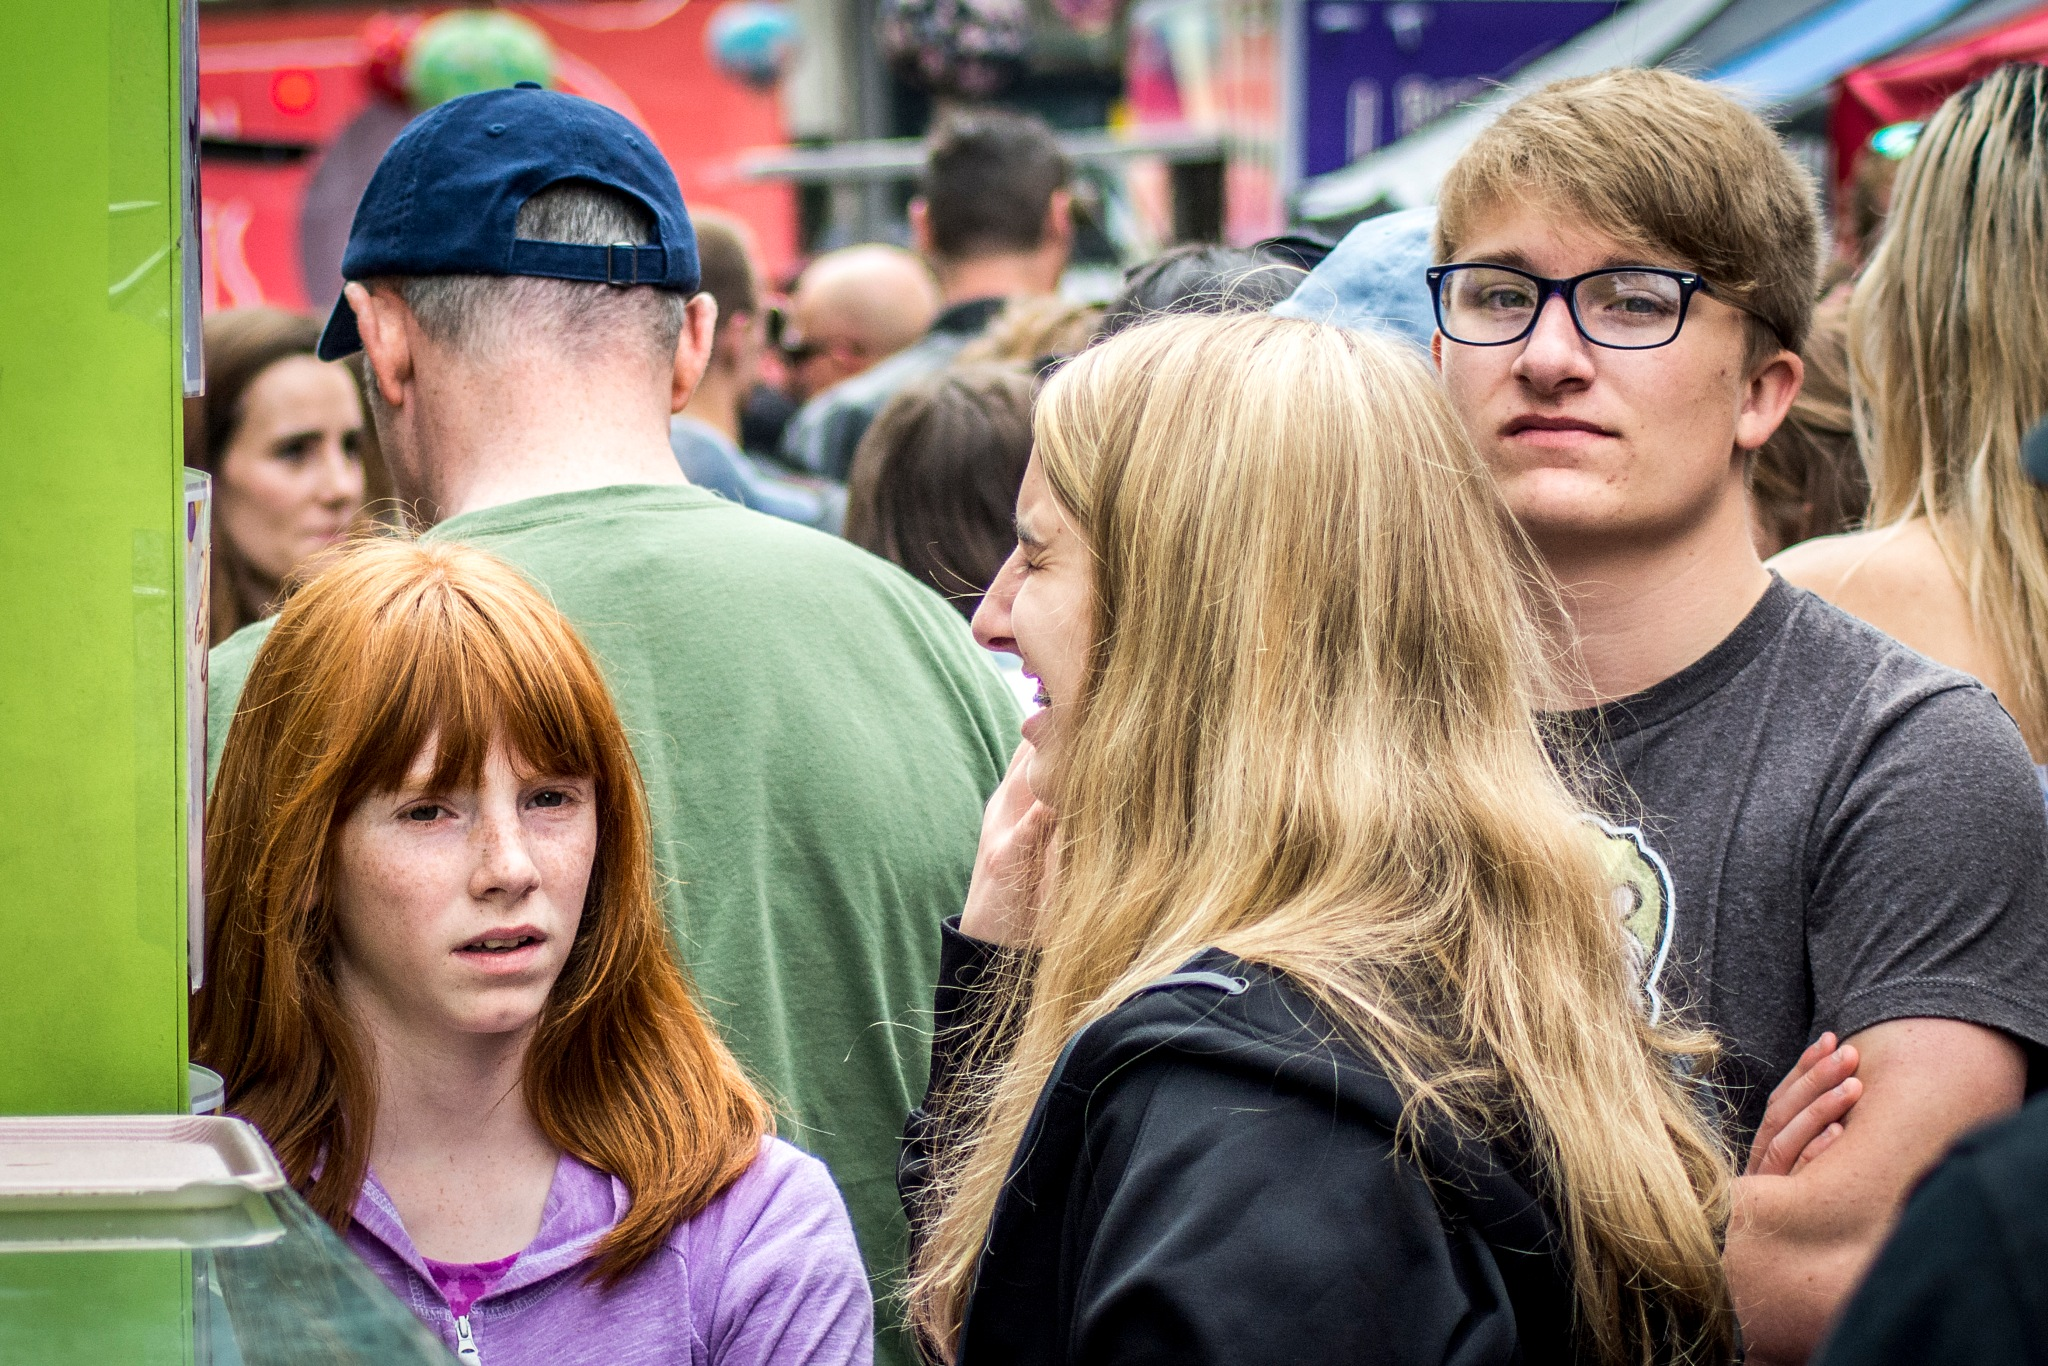 Crowds 2 by Dickon Lentell